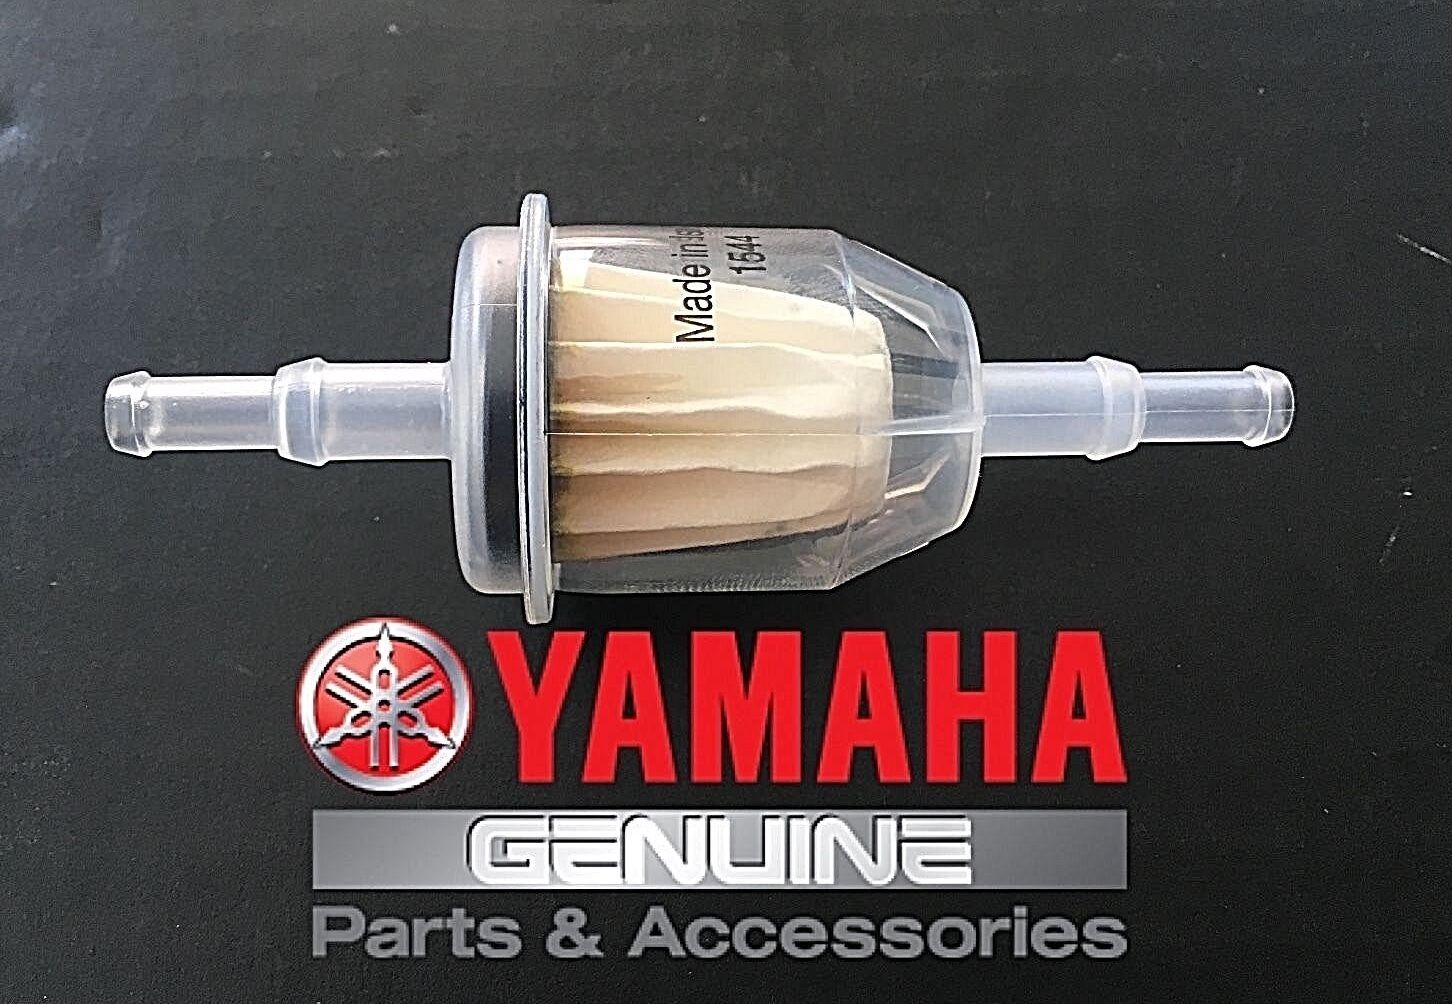 New Oem Yamaha Rhino 660 450 Fuel Filter Jn6 F4560 00 Utv Sxs 2004 Polaris Sportsman 1 Of 1only 3 Available